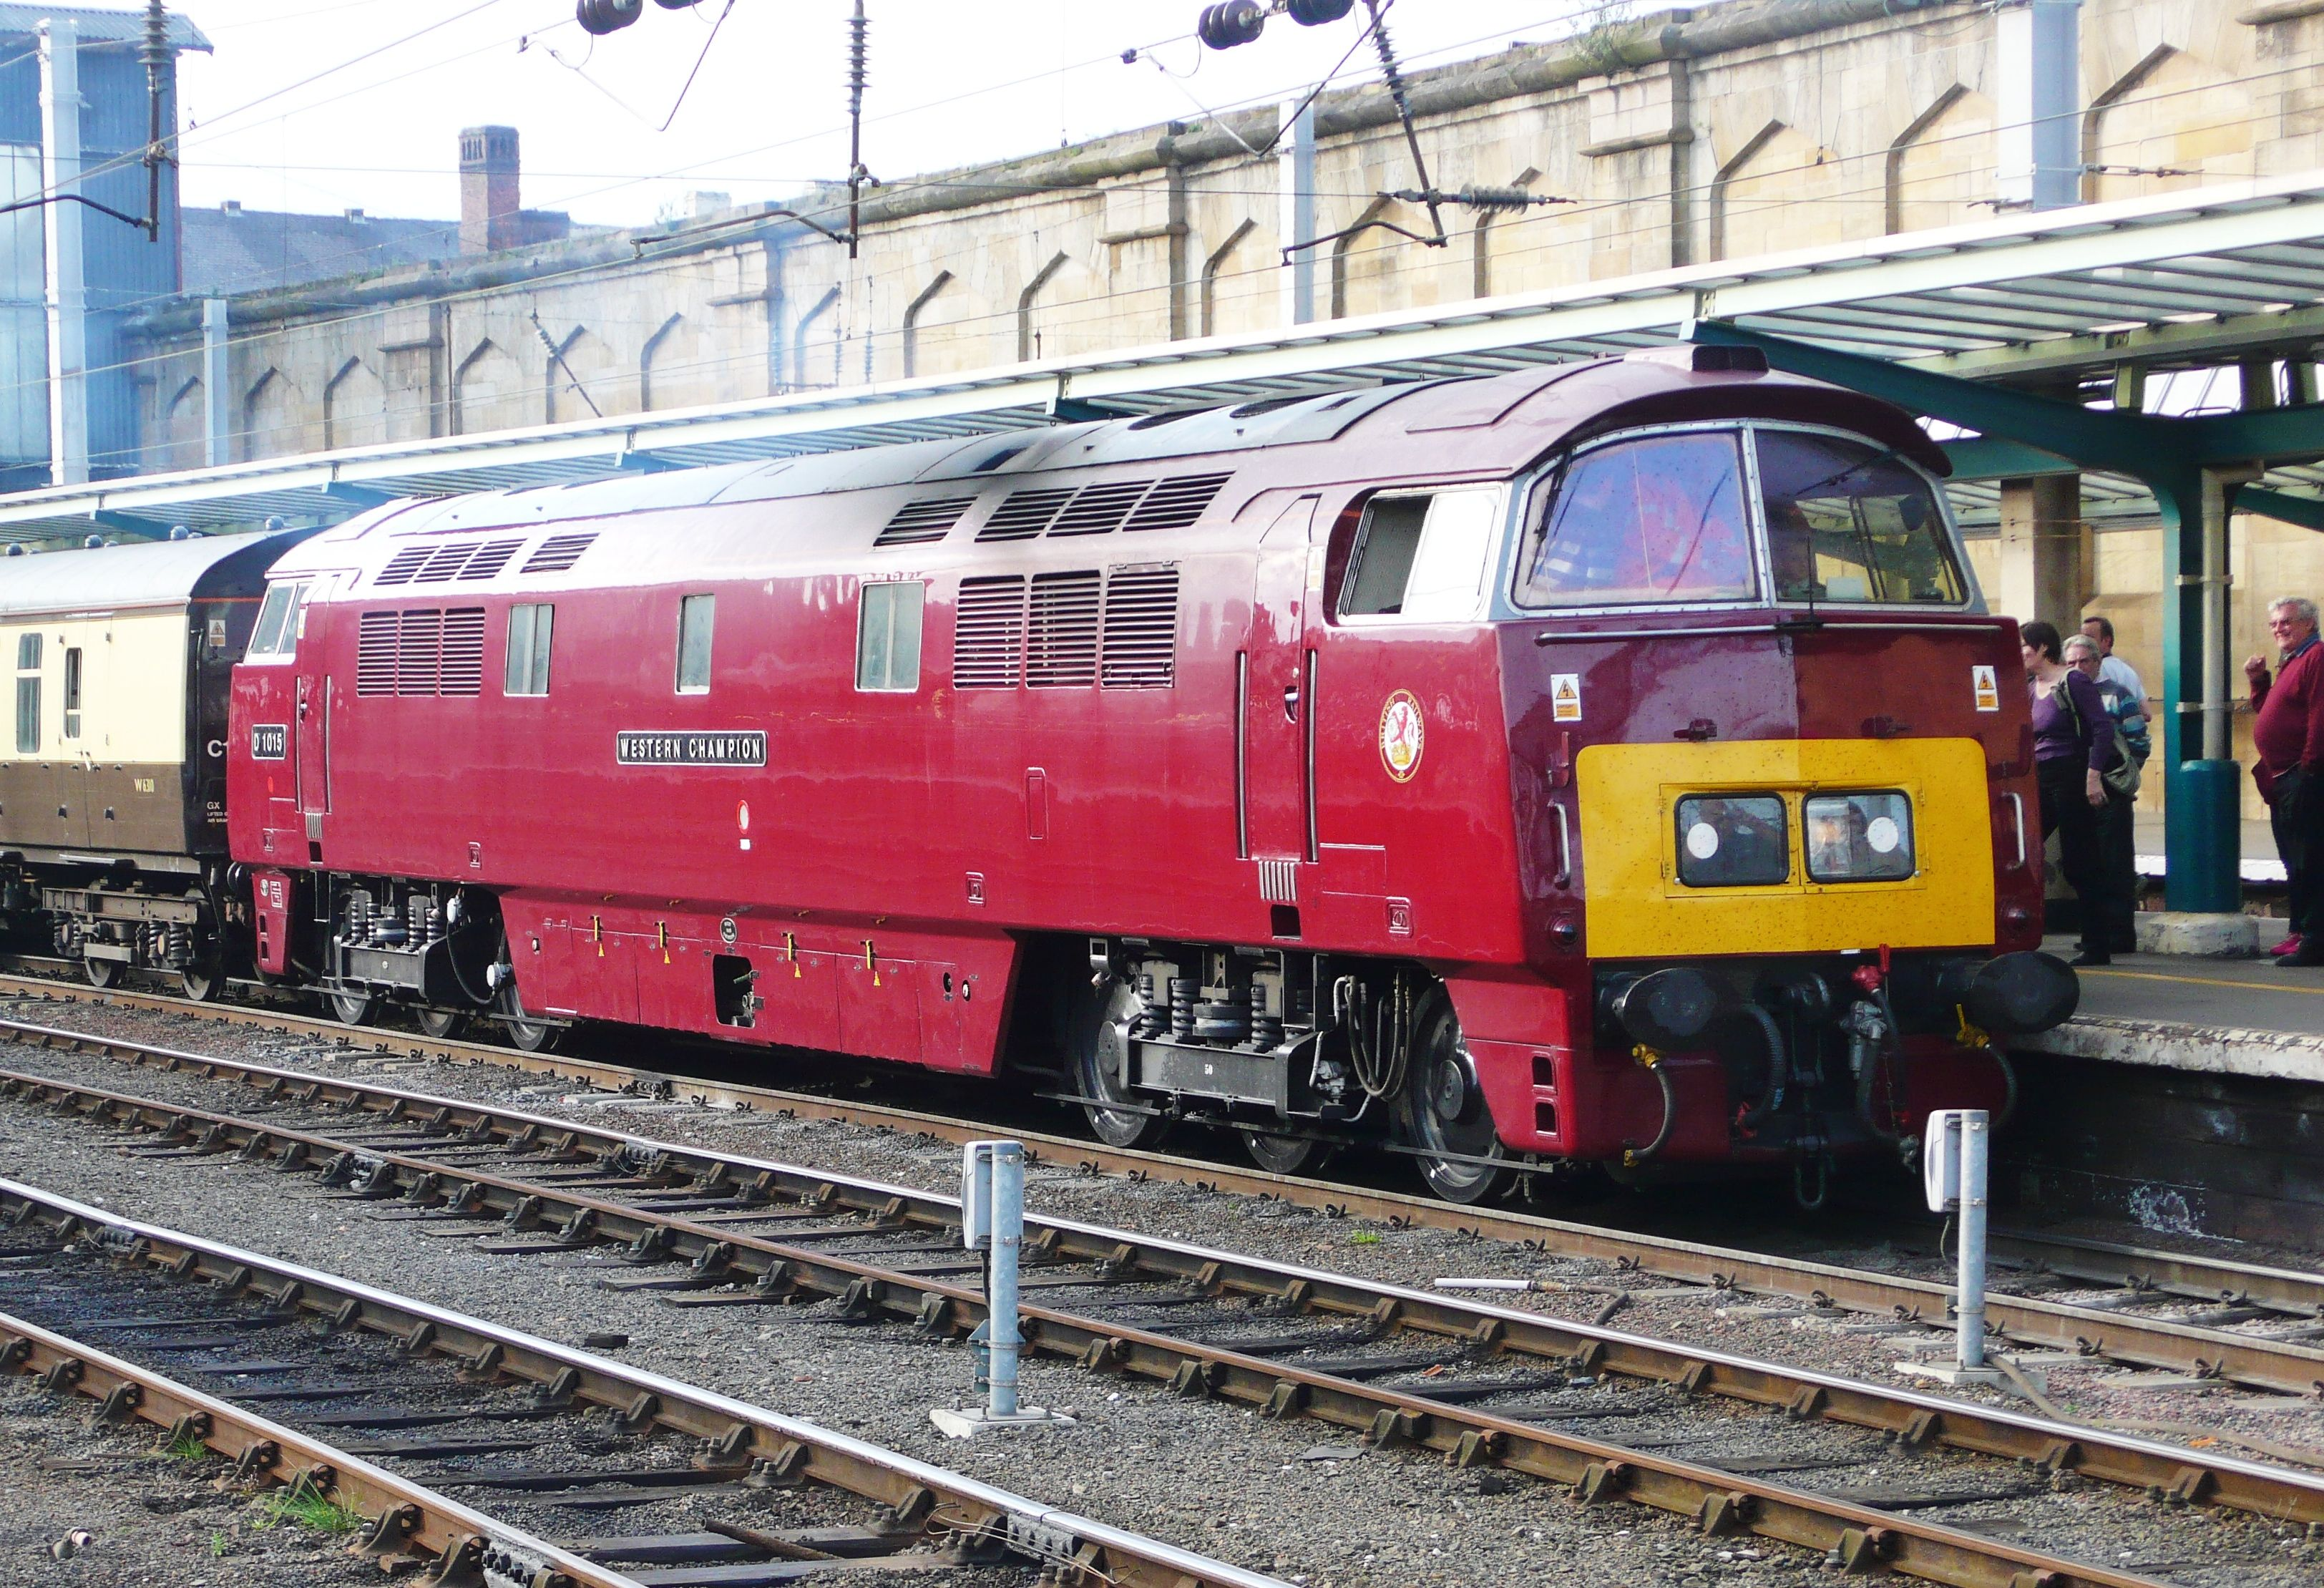 Class 52 Western. Used to see these on my holidays in Devon, back in the 70's!